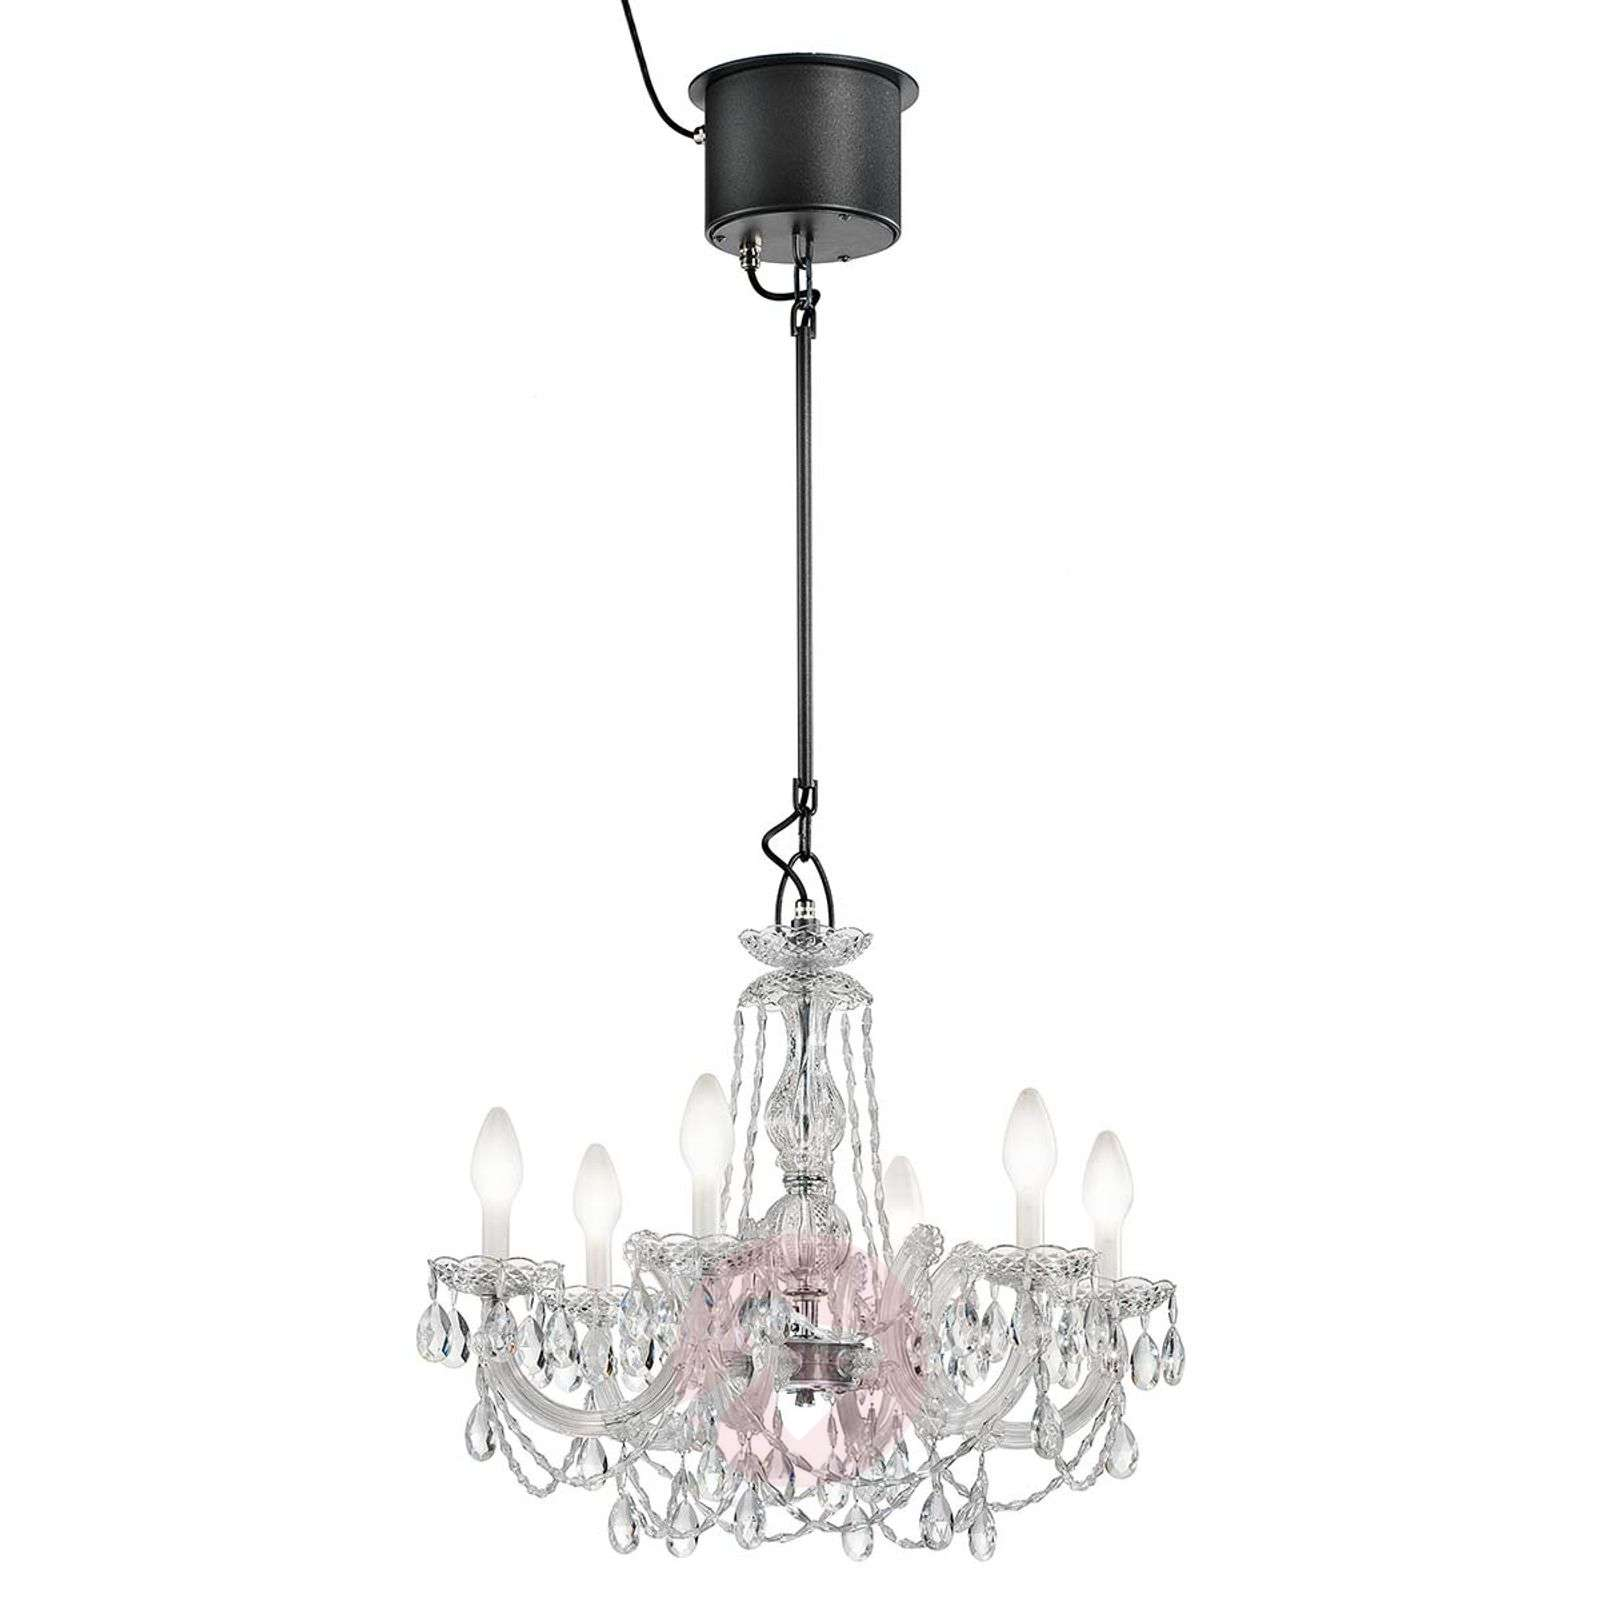 Drylight s6 6 bulb outdoor led chandelier lights drylight s6 6 bulb outdoor led chandelier 6517246 01 aloadofball Gallery